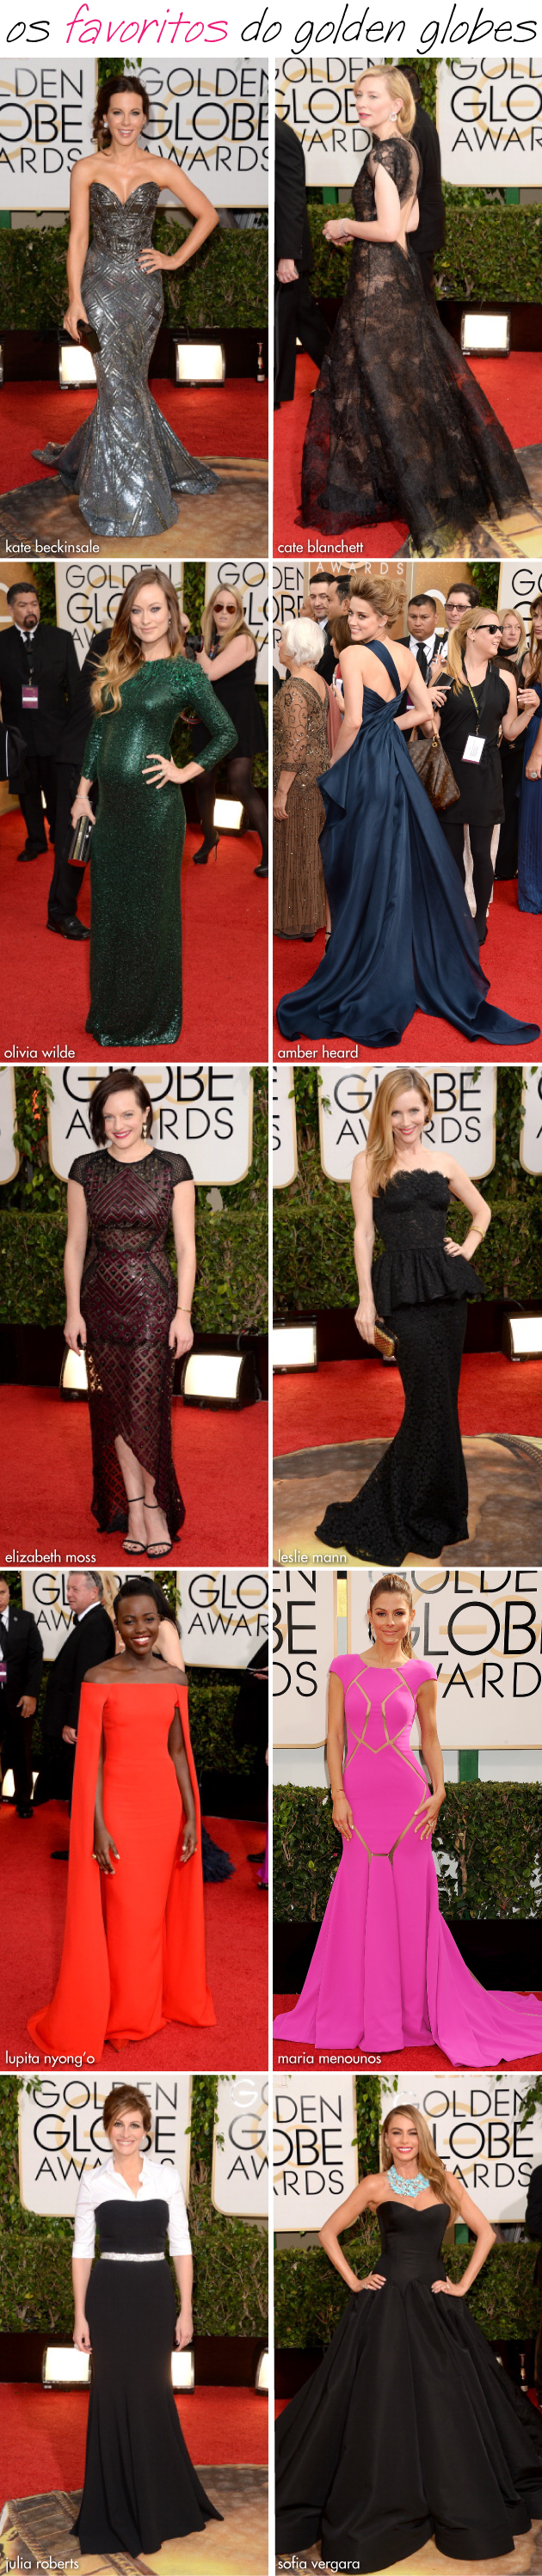 melhores-looks-golden-globe-awards-golden-globes-red-carpet-best-dresses-vestidos-2014